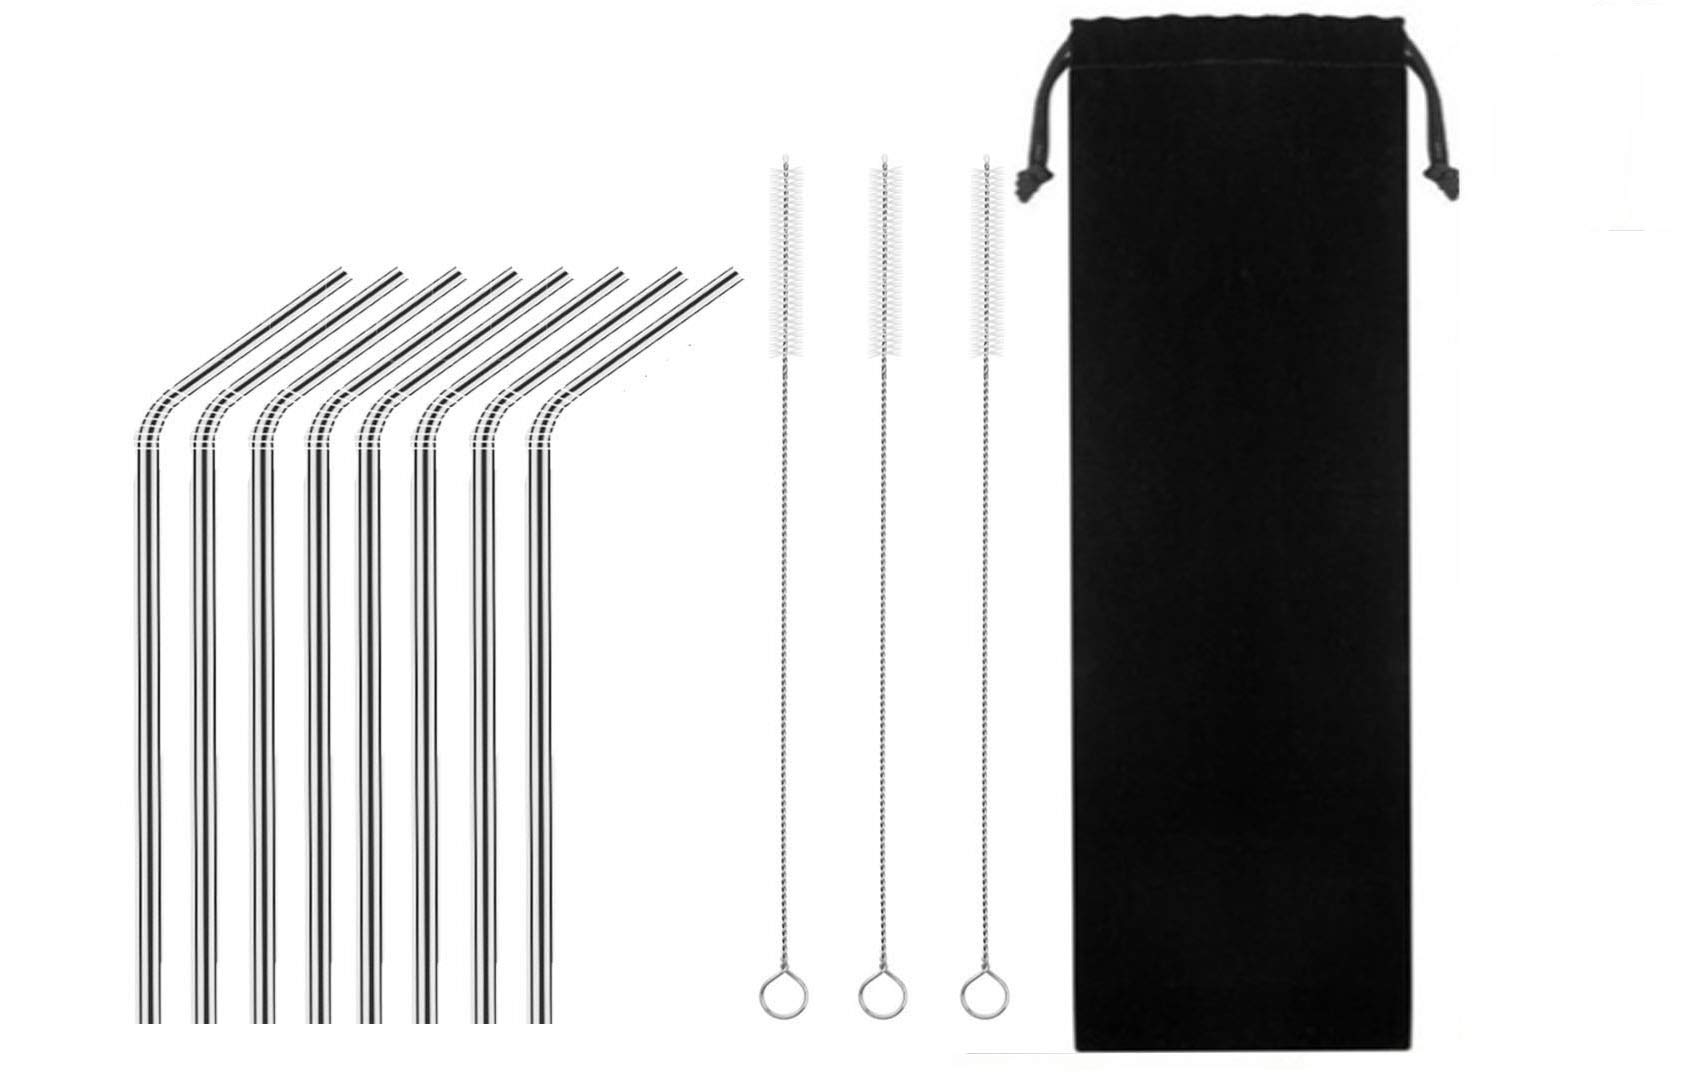 Stainless Steel Drinking Straw, TKTM Set of 8 Reusable Metal Stras for 20 oz(8.5''0.24 Bent)